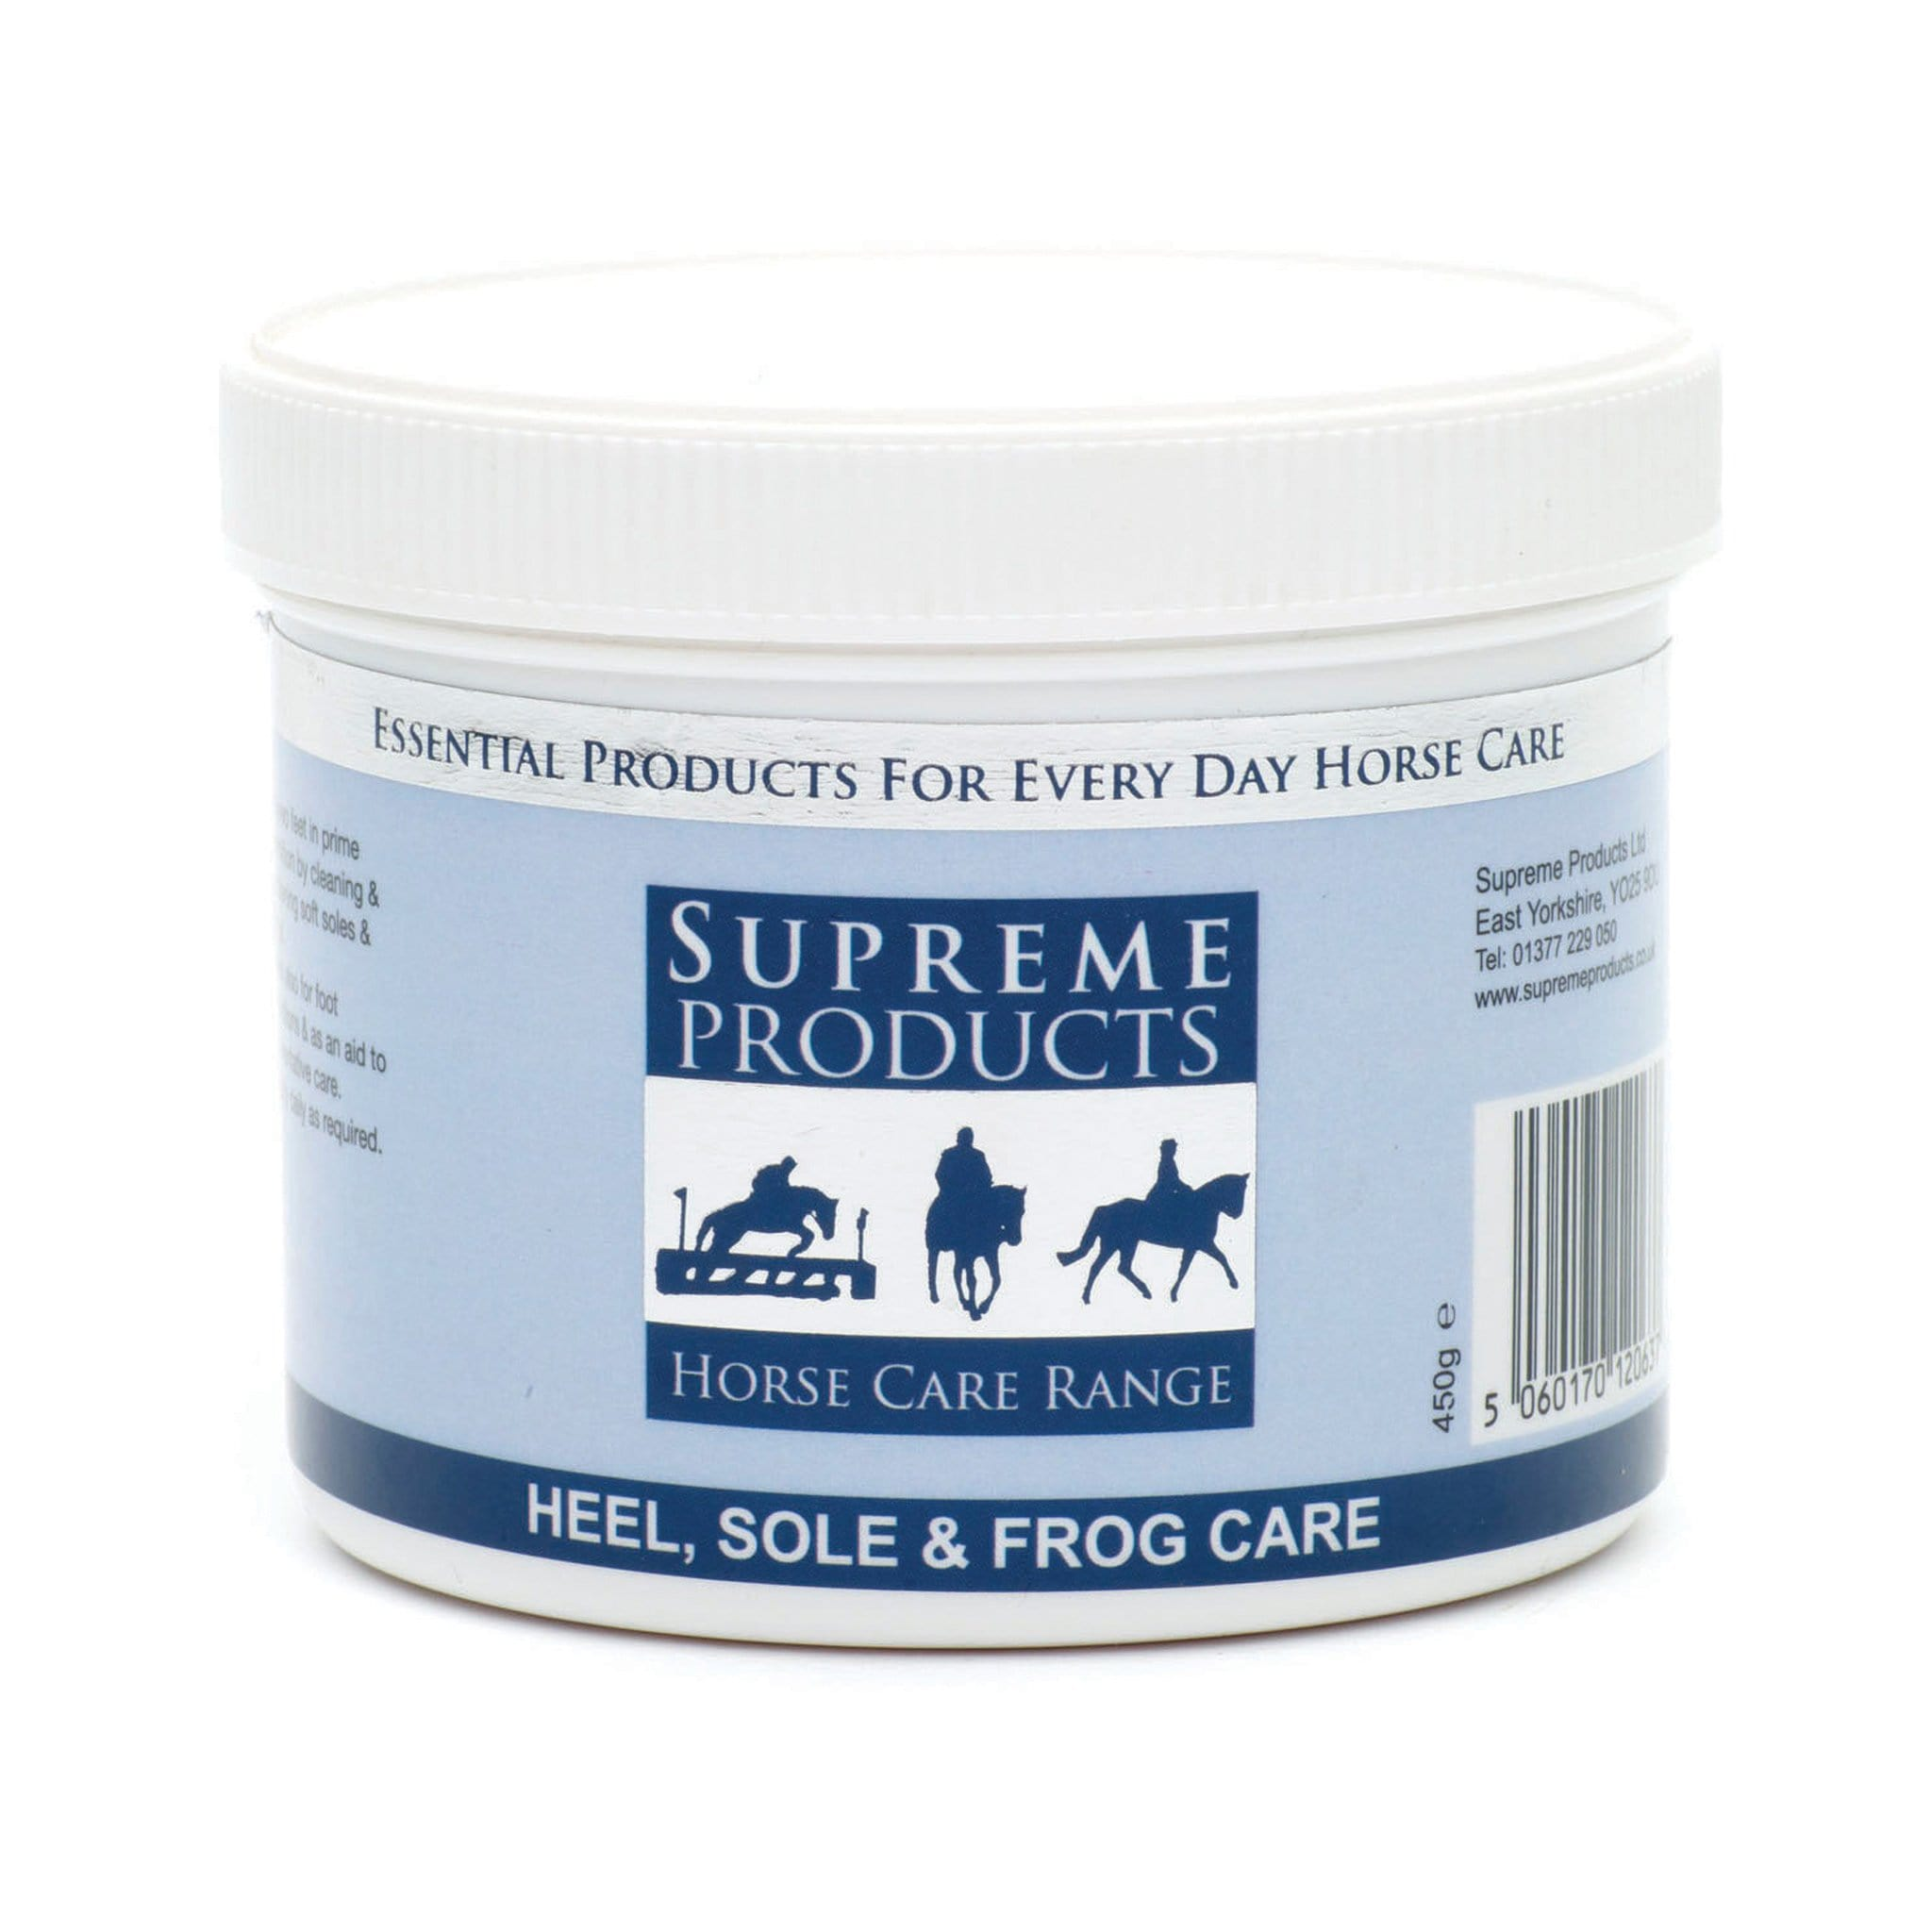 Supreme Products Heel, Sole & Frog Care 450G 3006